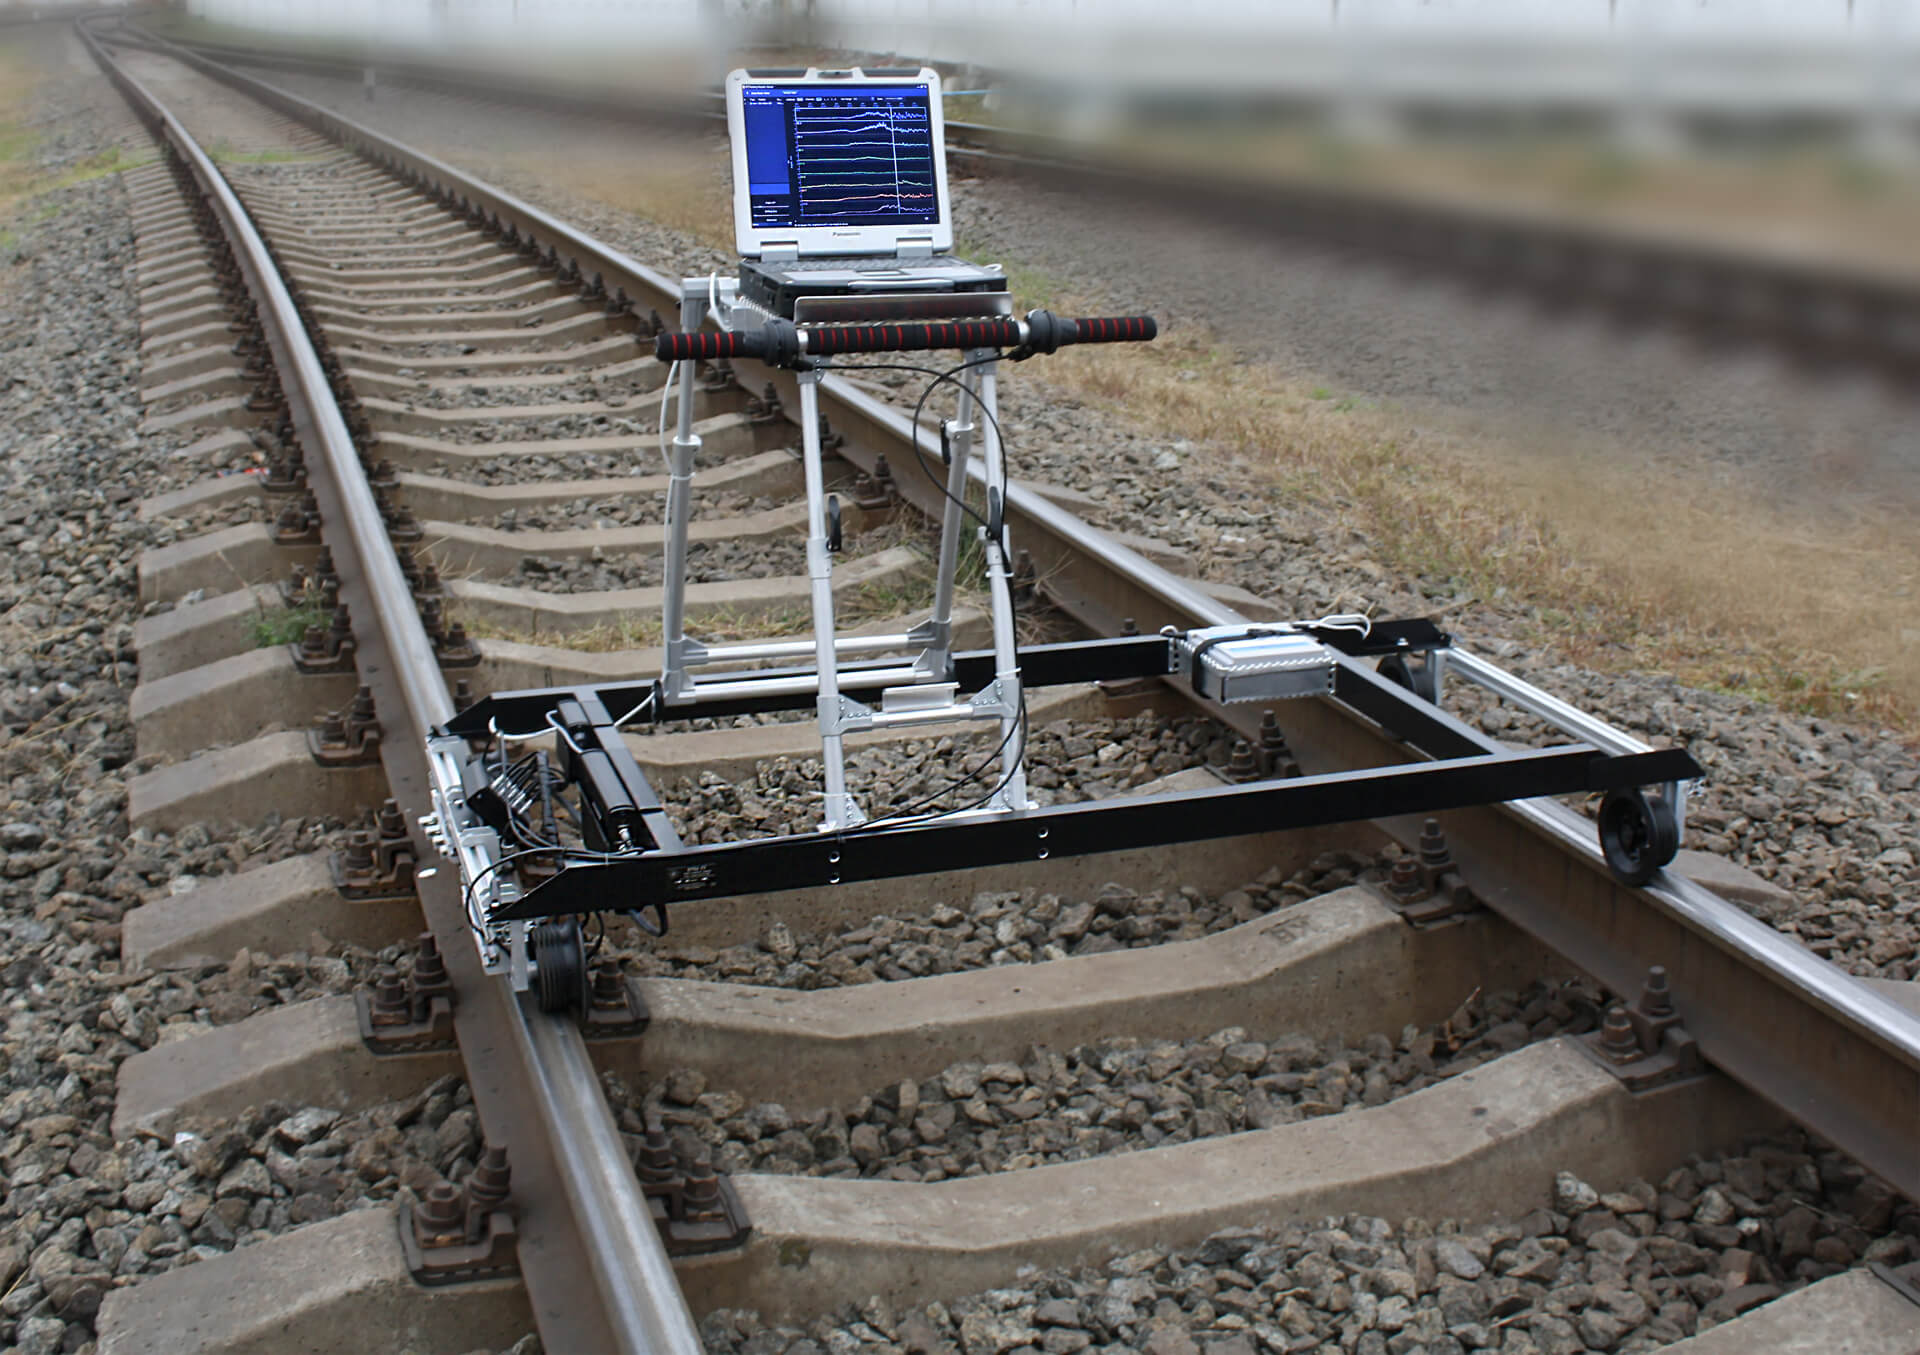 Eddy current testing of rails